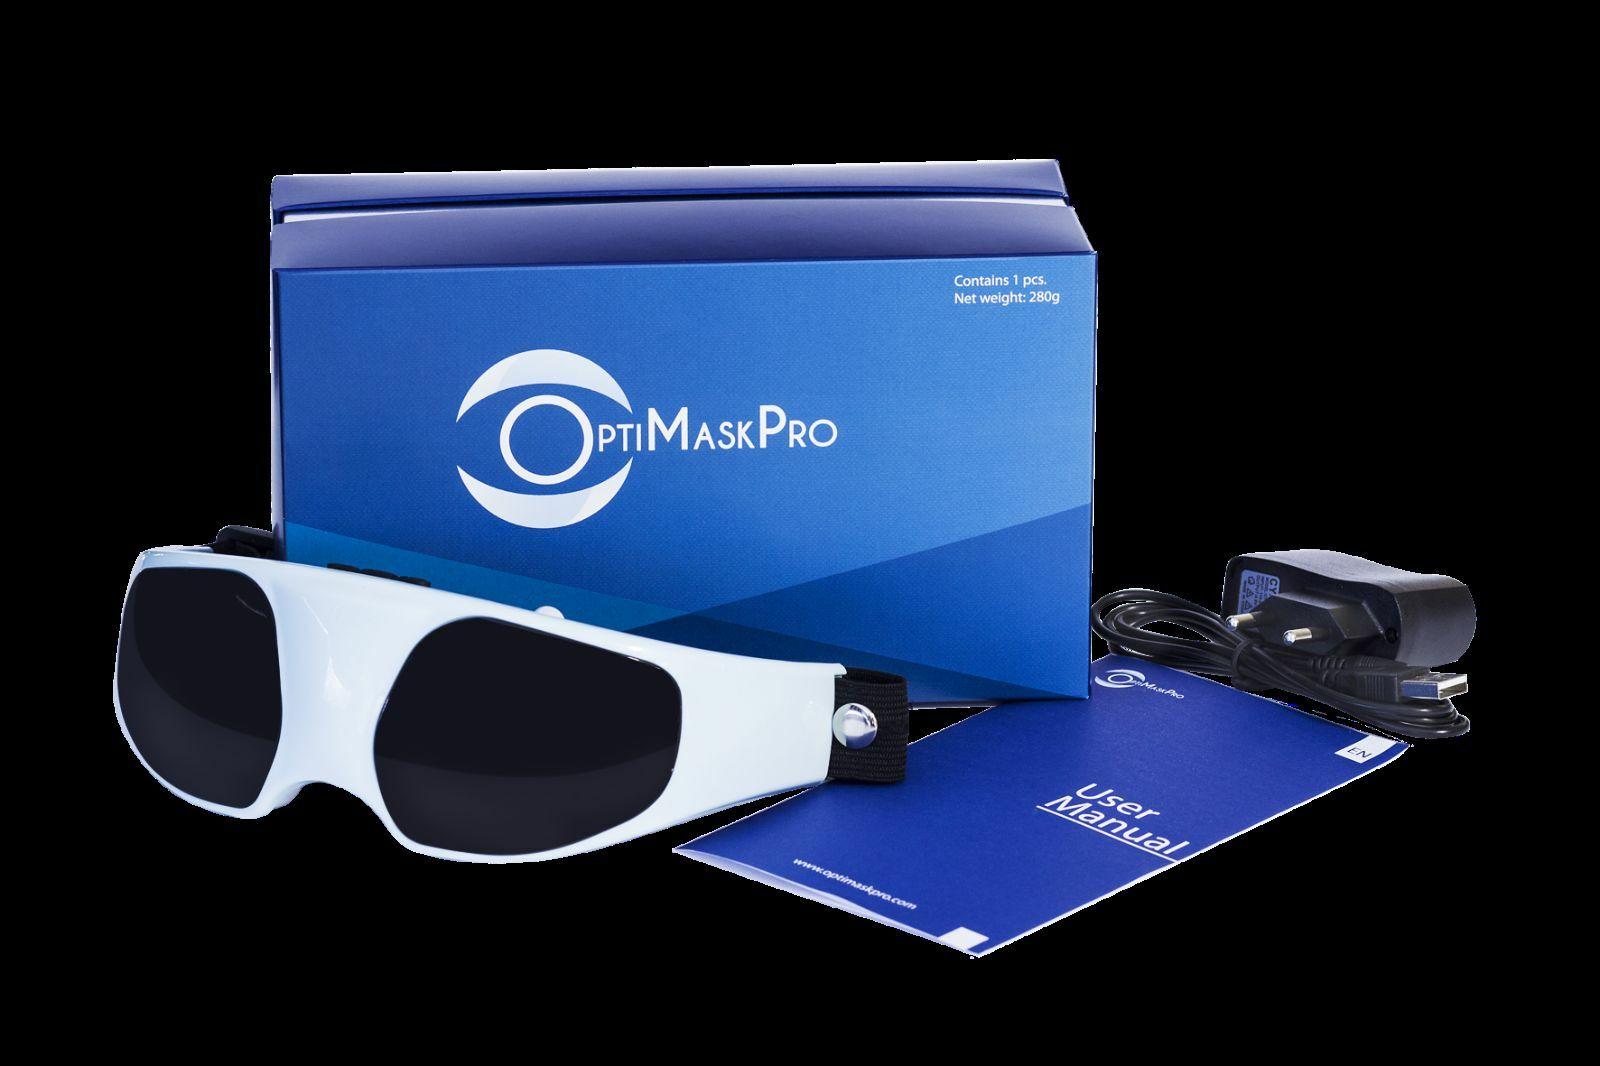 Comentarios OptiMaskPro